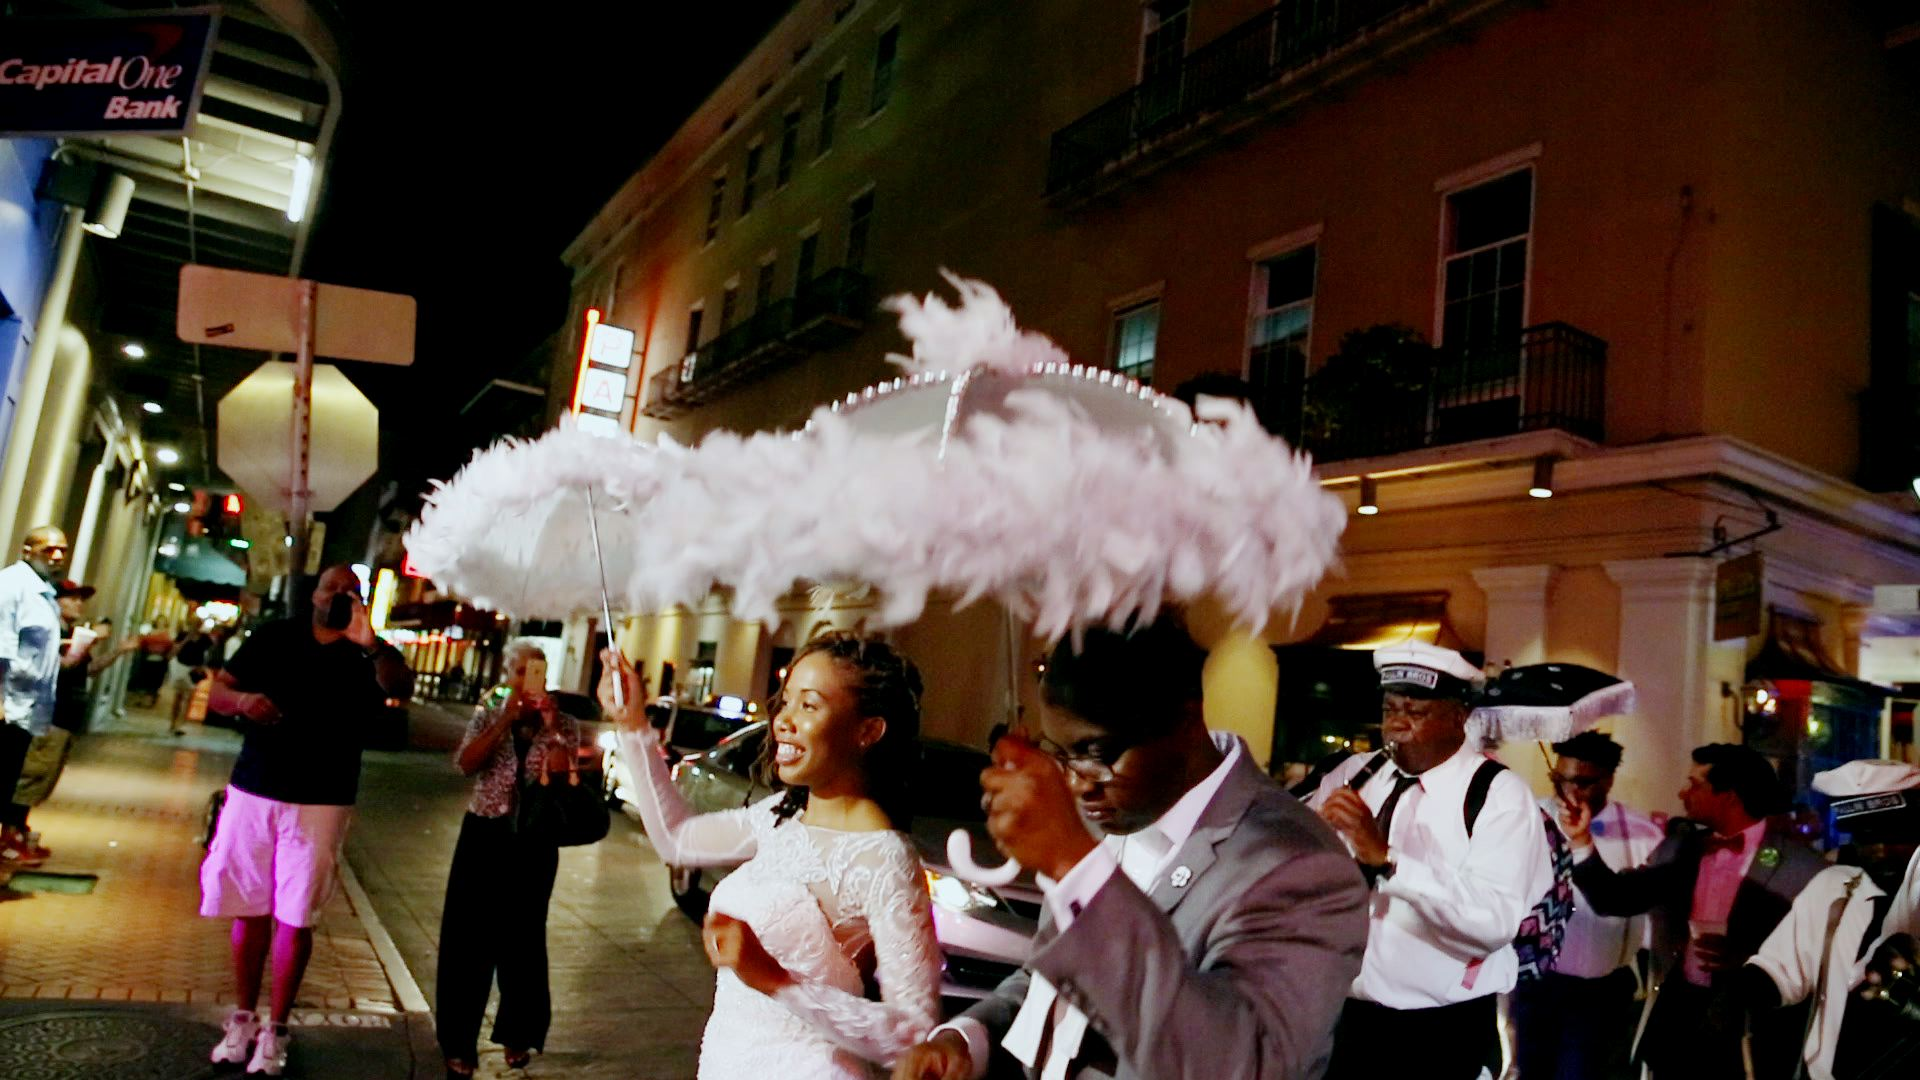 Nothing like a second line to cap off the night.